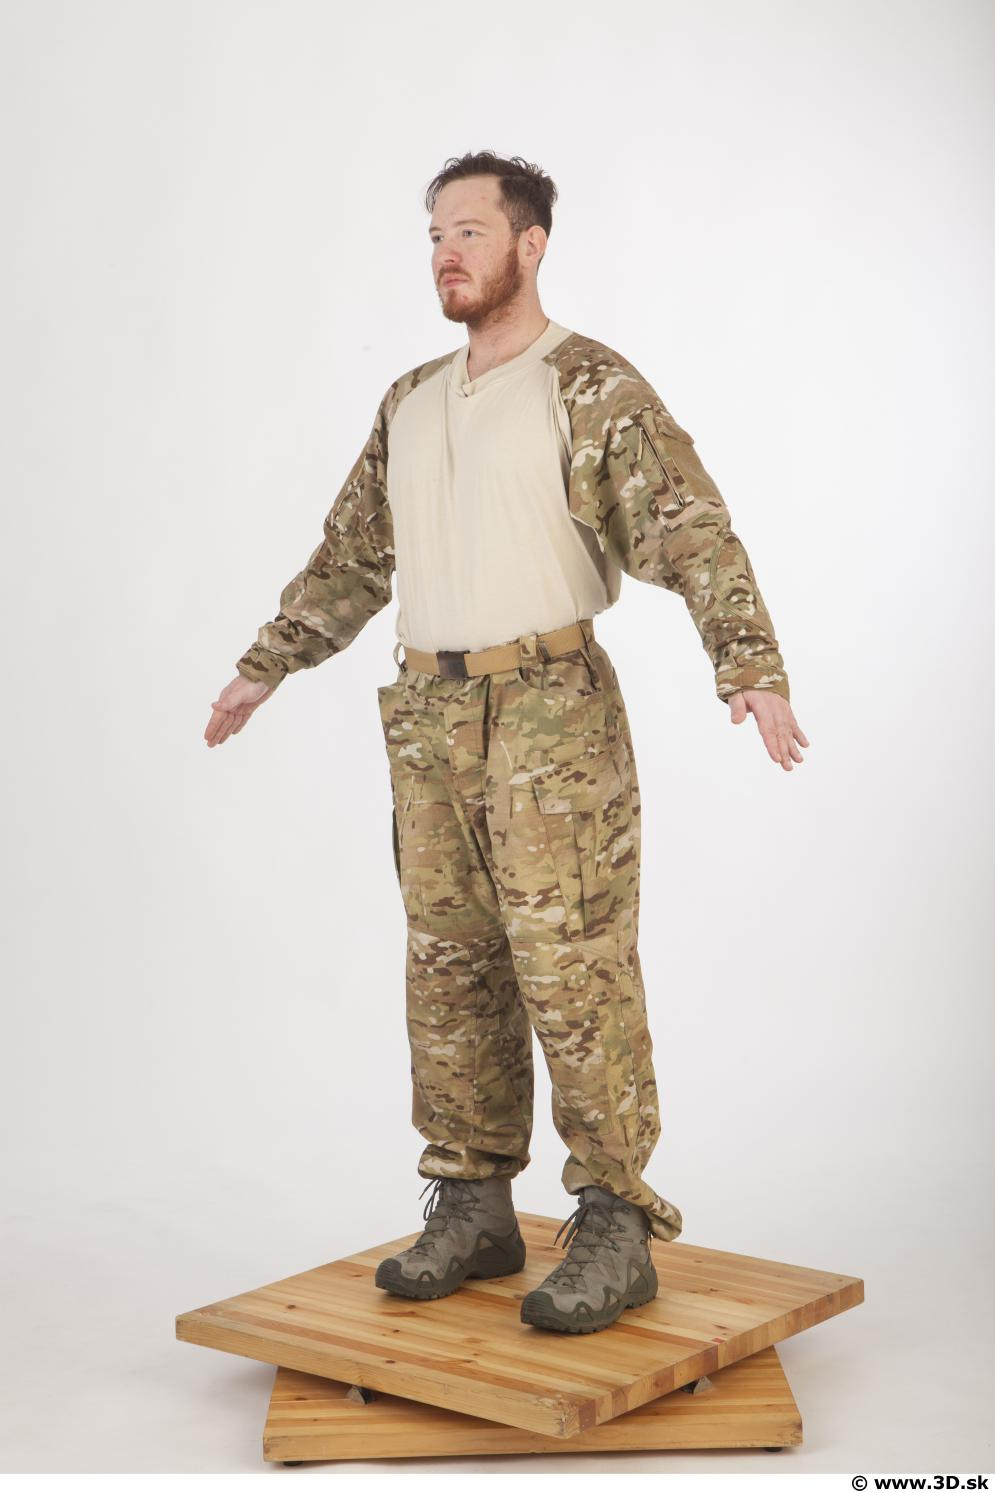 Image from Free Samples / May 2018 - 0003_soldier_in_american_army_military_uniform_0003.jpg